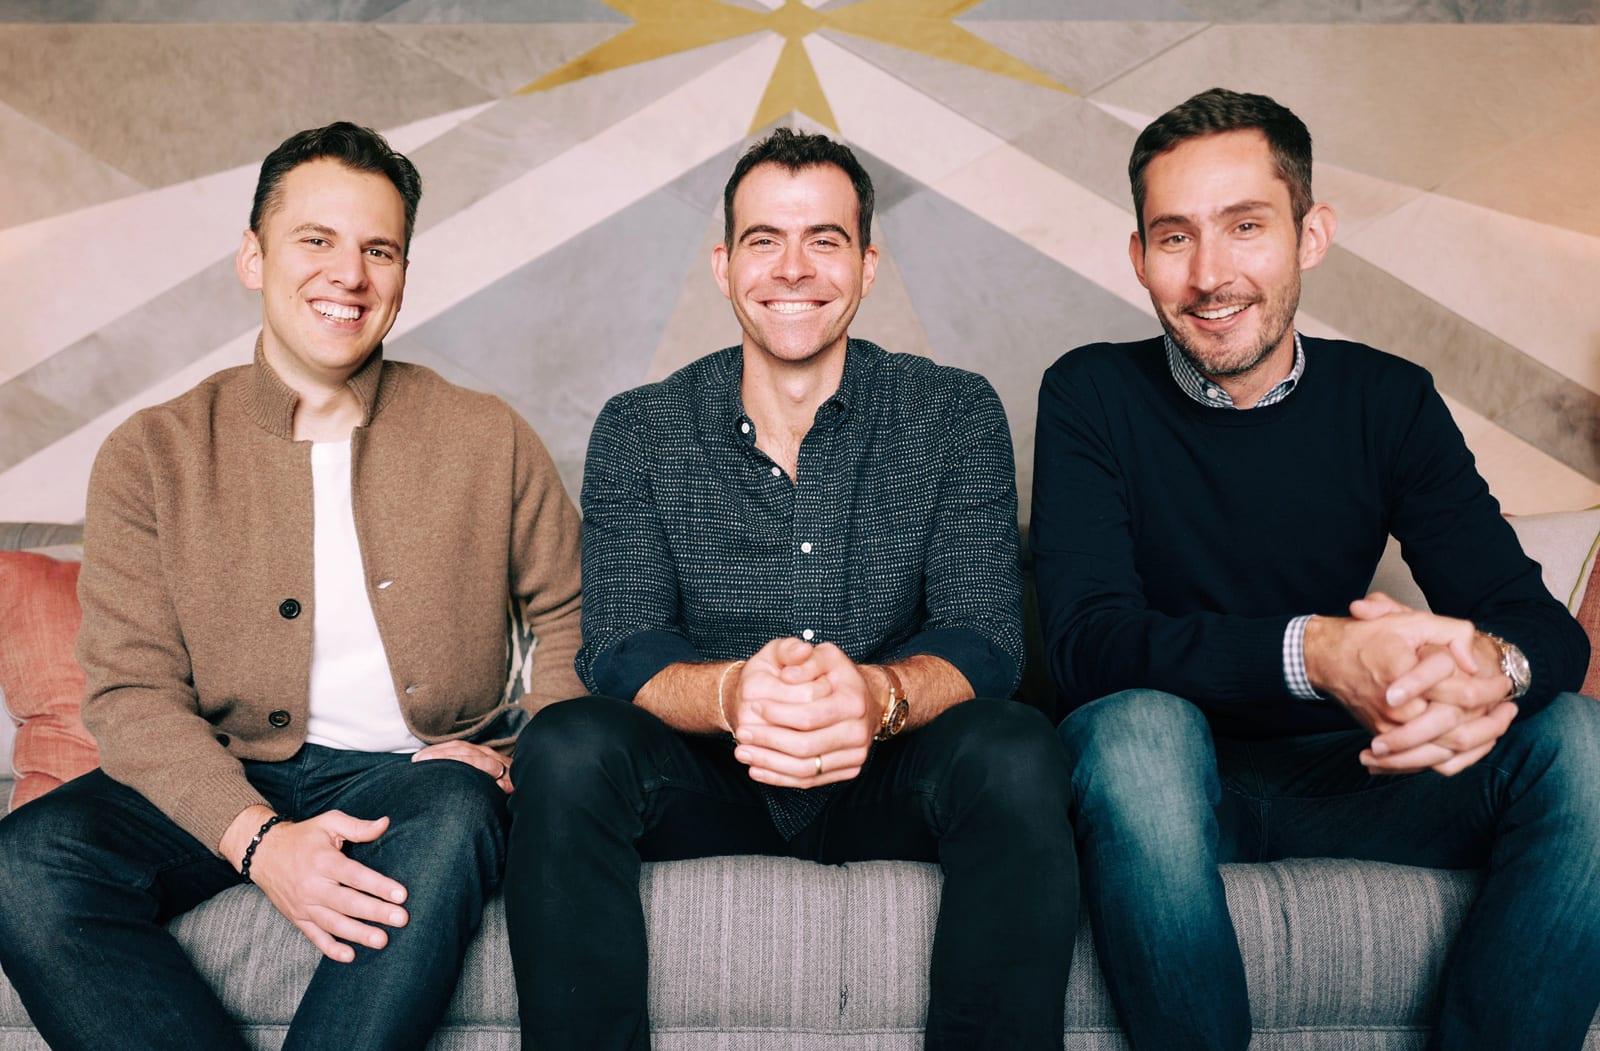 Instagram's new CEO is Facebook veteran Adam Mosseri